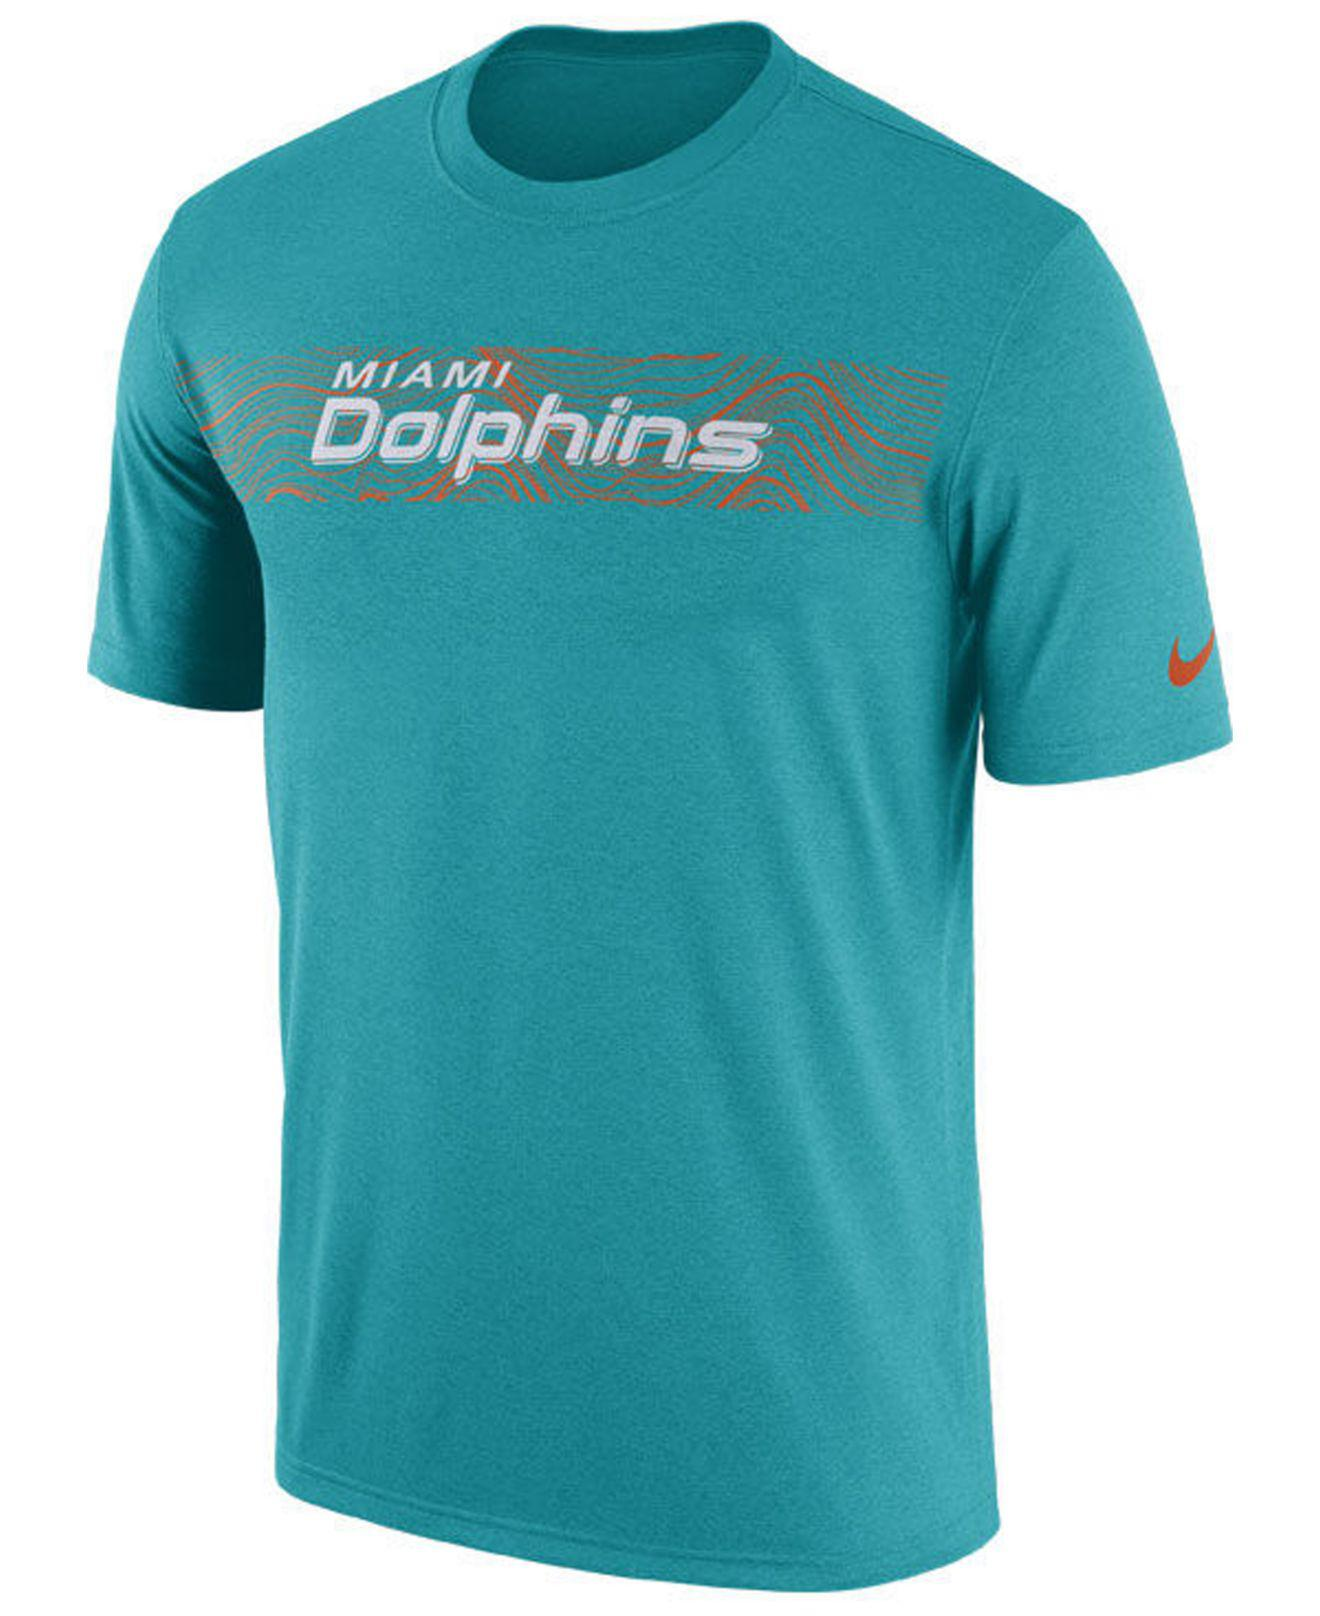 Lyst - Nike Miami Dolphins Legend On-field Seismic T-shirt in Blue ... 78dc73c28